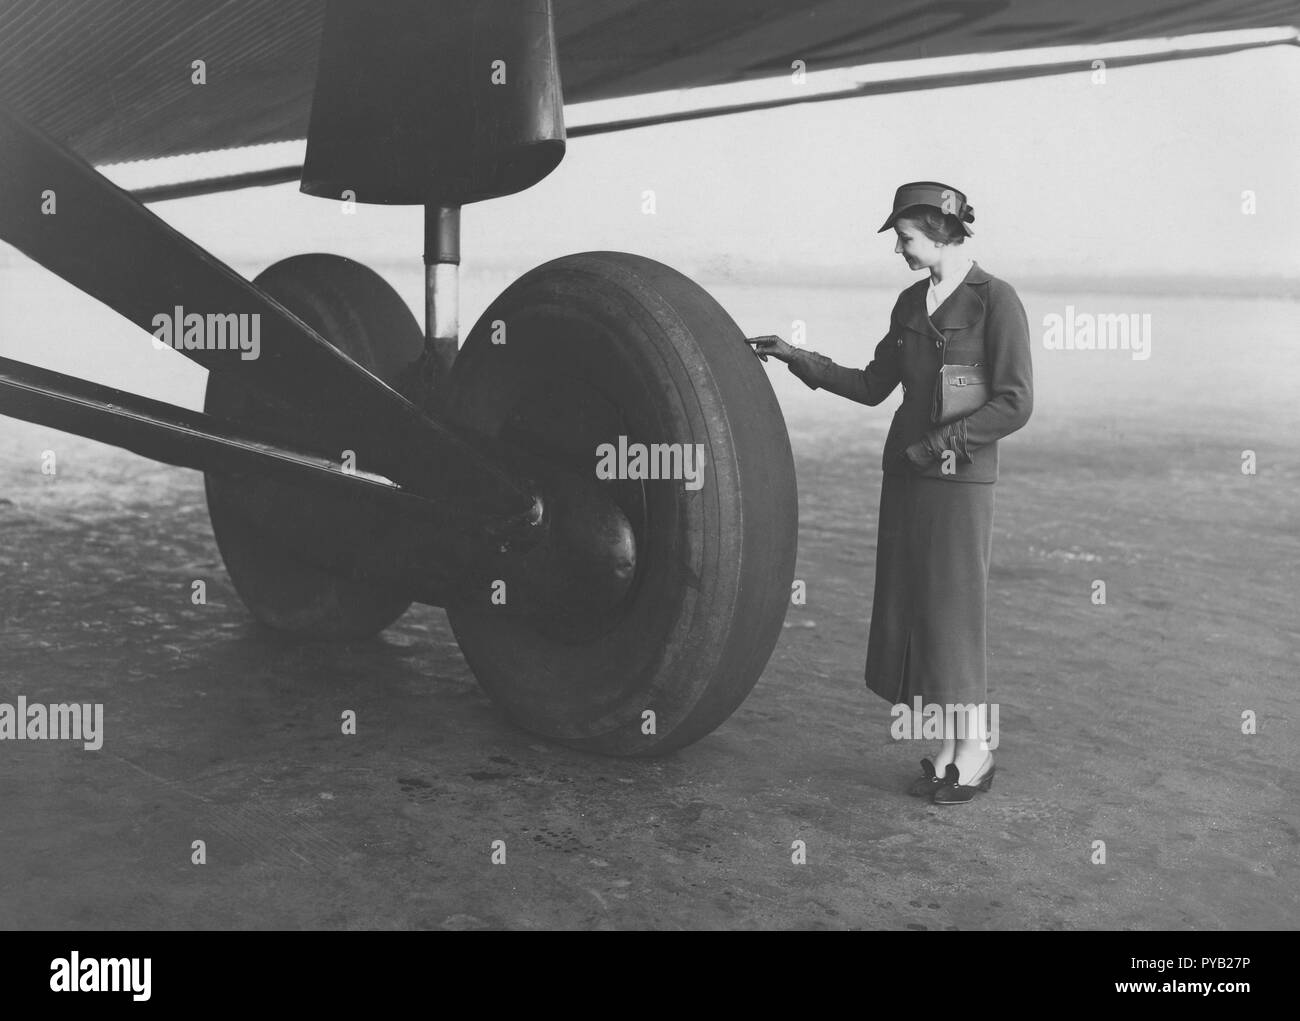 Airplane in the 1930s. A well dressed young woman looks small when comparing her size to the giant wheels on the landing gear to this german Junker G38 aircraft. It was used between Berlin and London from July 1 1931 and was at that time the largest four engined passenger aircraft, with 34 passengers and seven crew members. - Stock Image